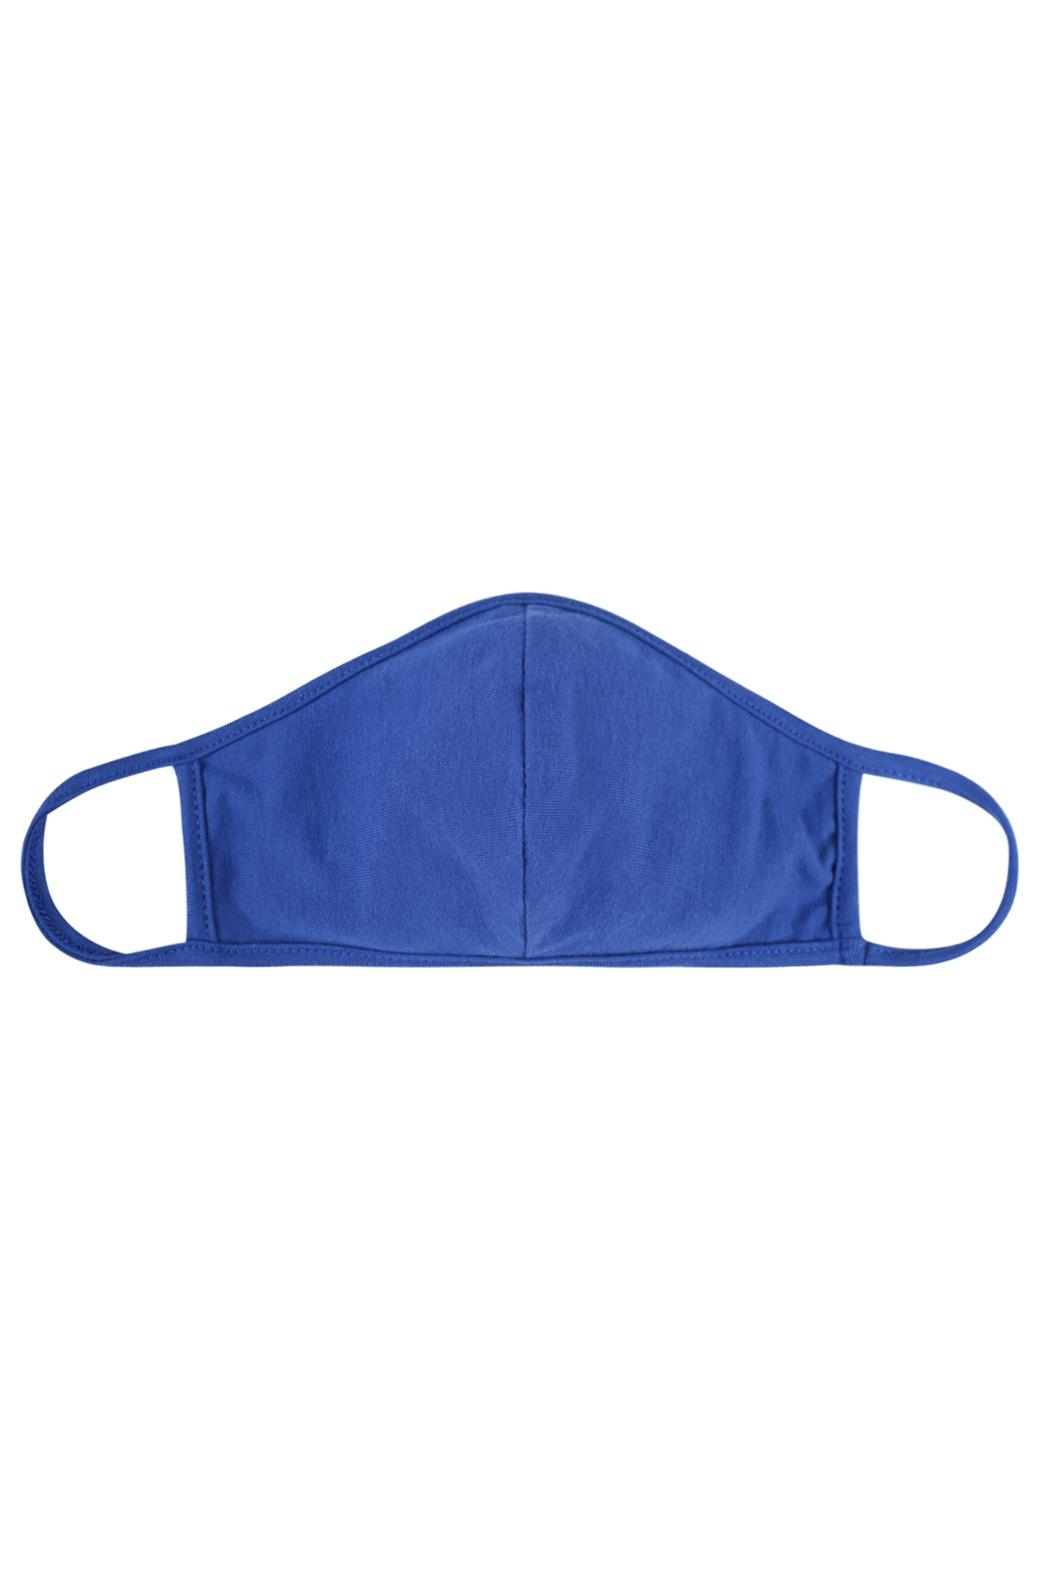 Riah Fashion Plain Reusable Face Mask For Adults With Filter Pocket - Front Cropped Image